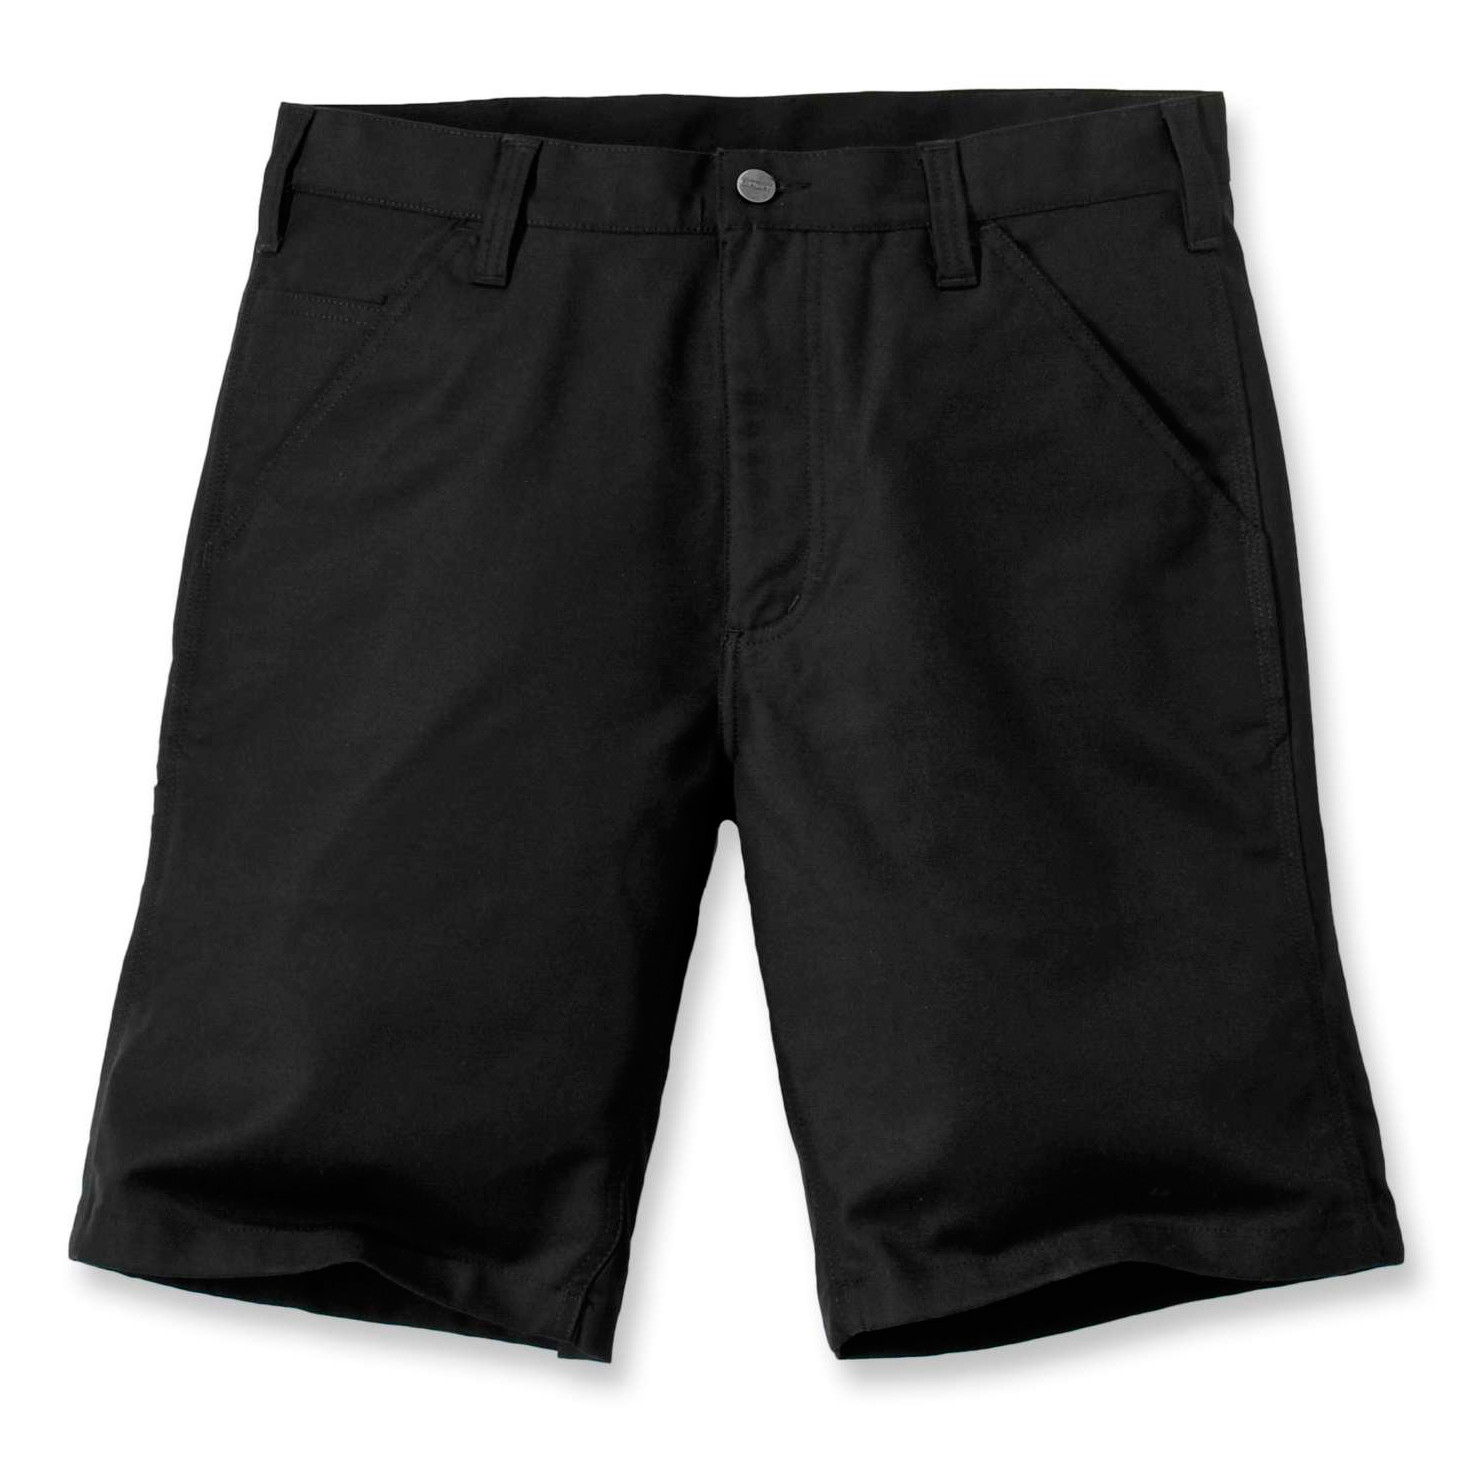 Шорты Carhartt Rugged Stretch Canvas Short - 103111 (Black, W31)